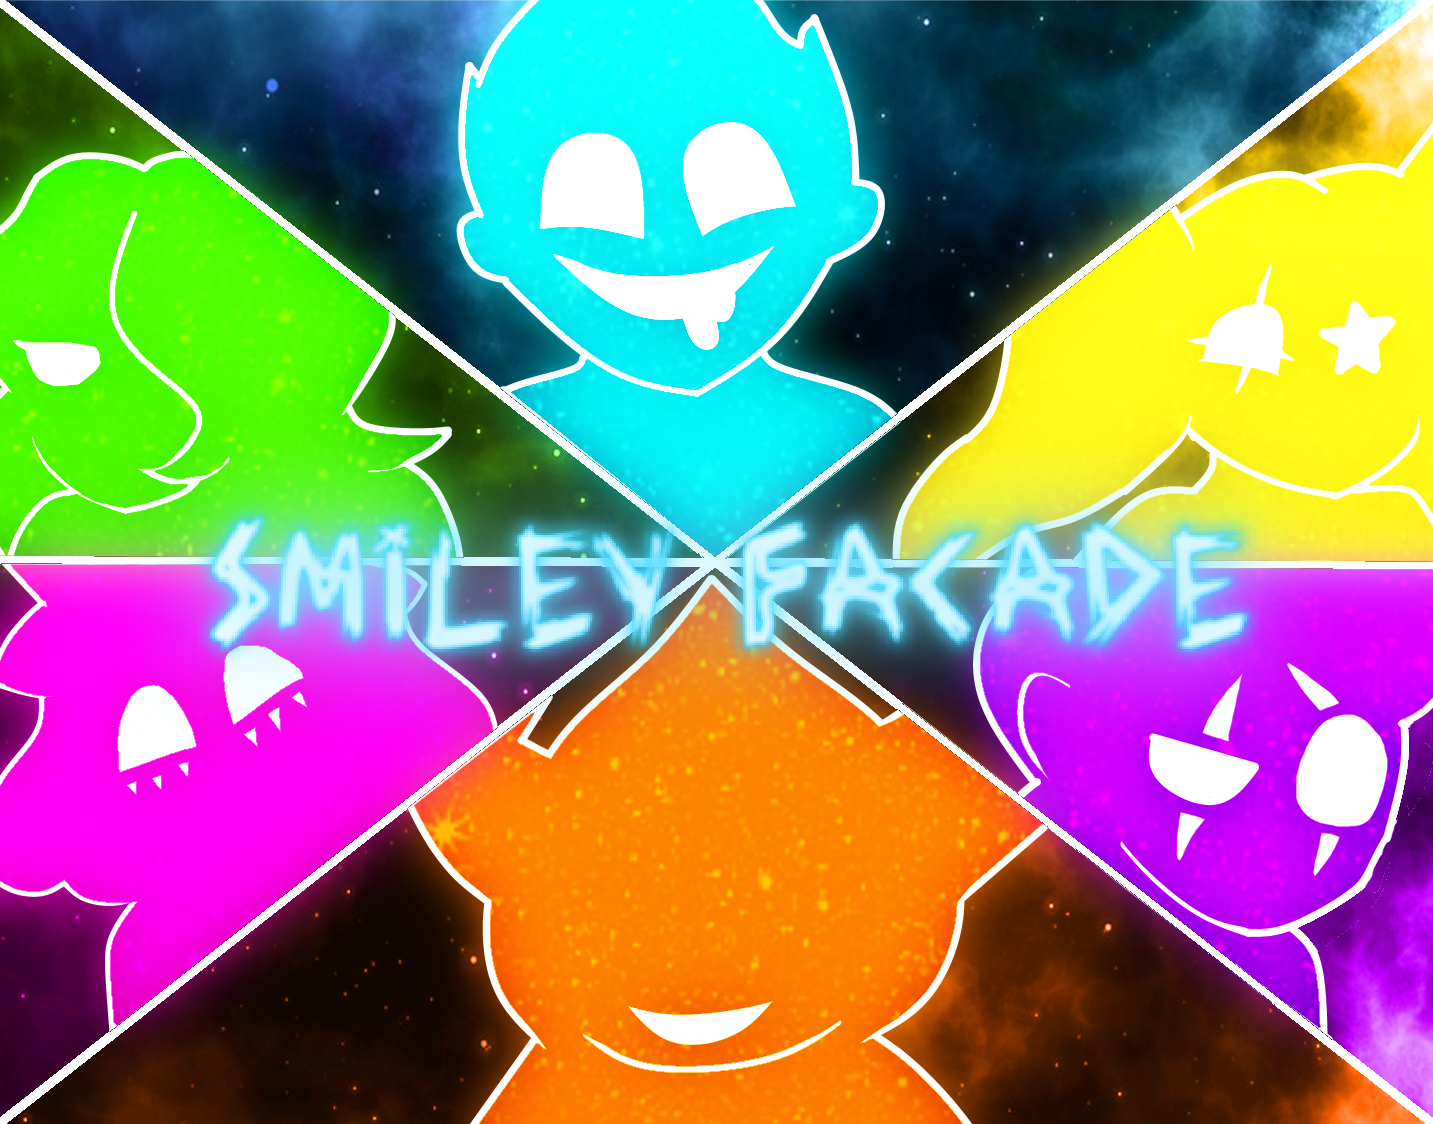 The-Smileyy's Profile Picture